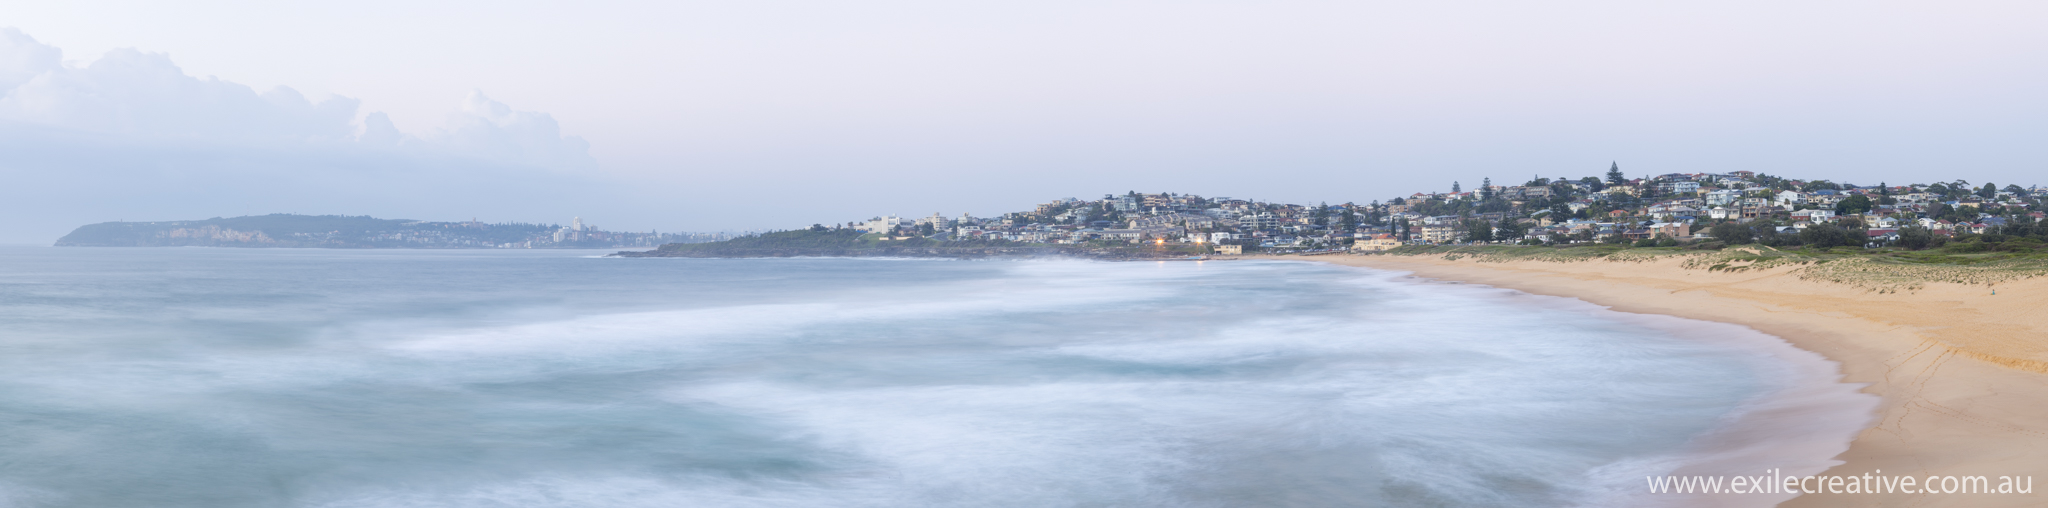 Looking South from North Curl Curl